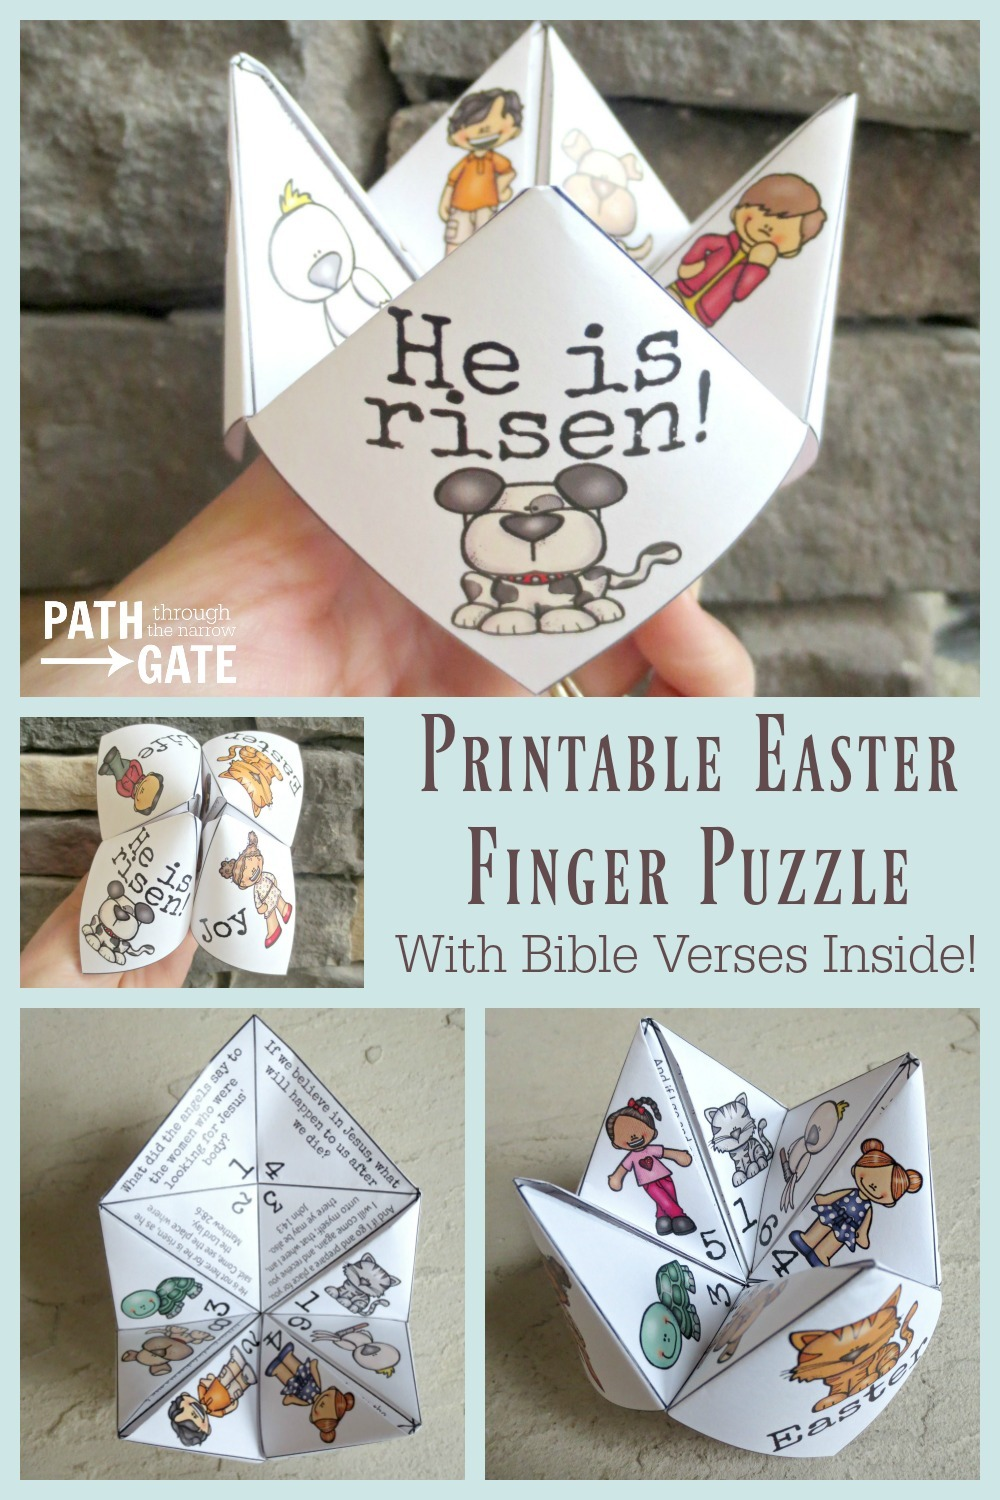 Looking for a simple yet super-fun craft for Easter? These adorable Easter Finger Puzzles are perfect to make at home with your own kids or in a classroom.